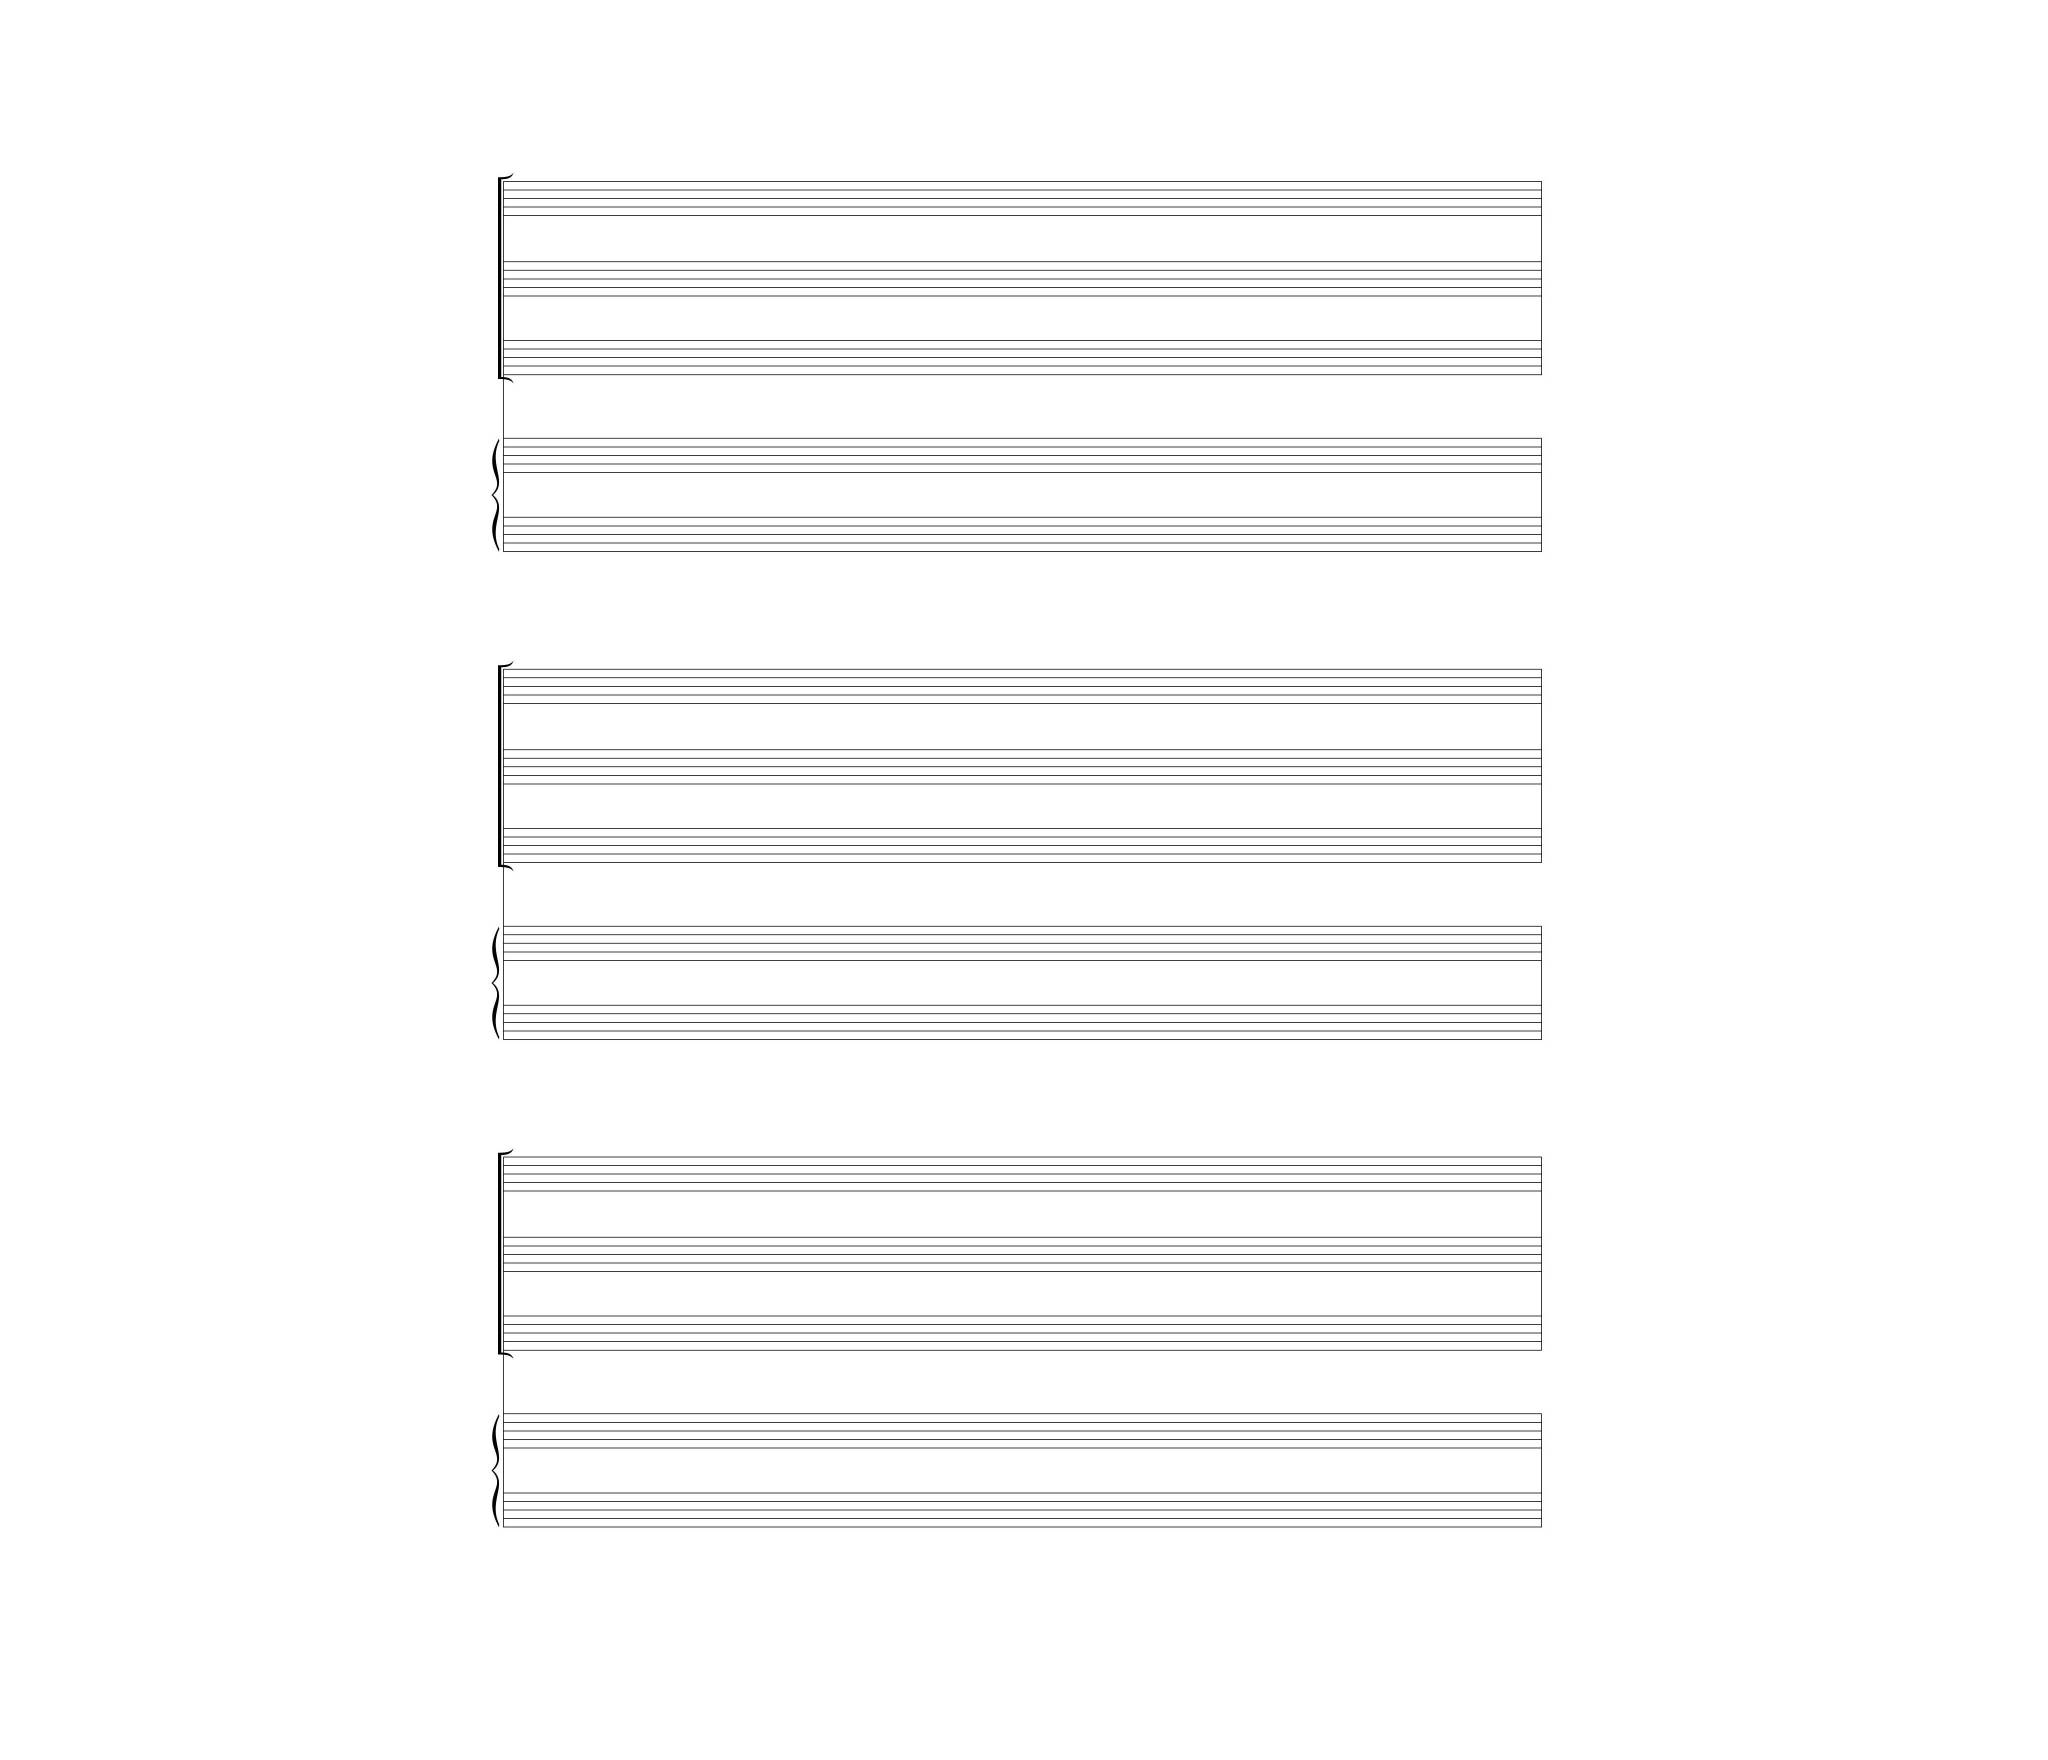 15-staves-without-clefs-blank-sheet-music